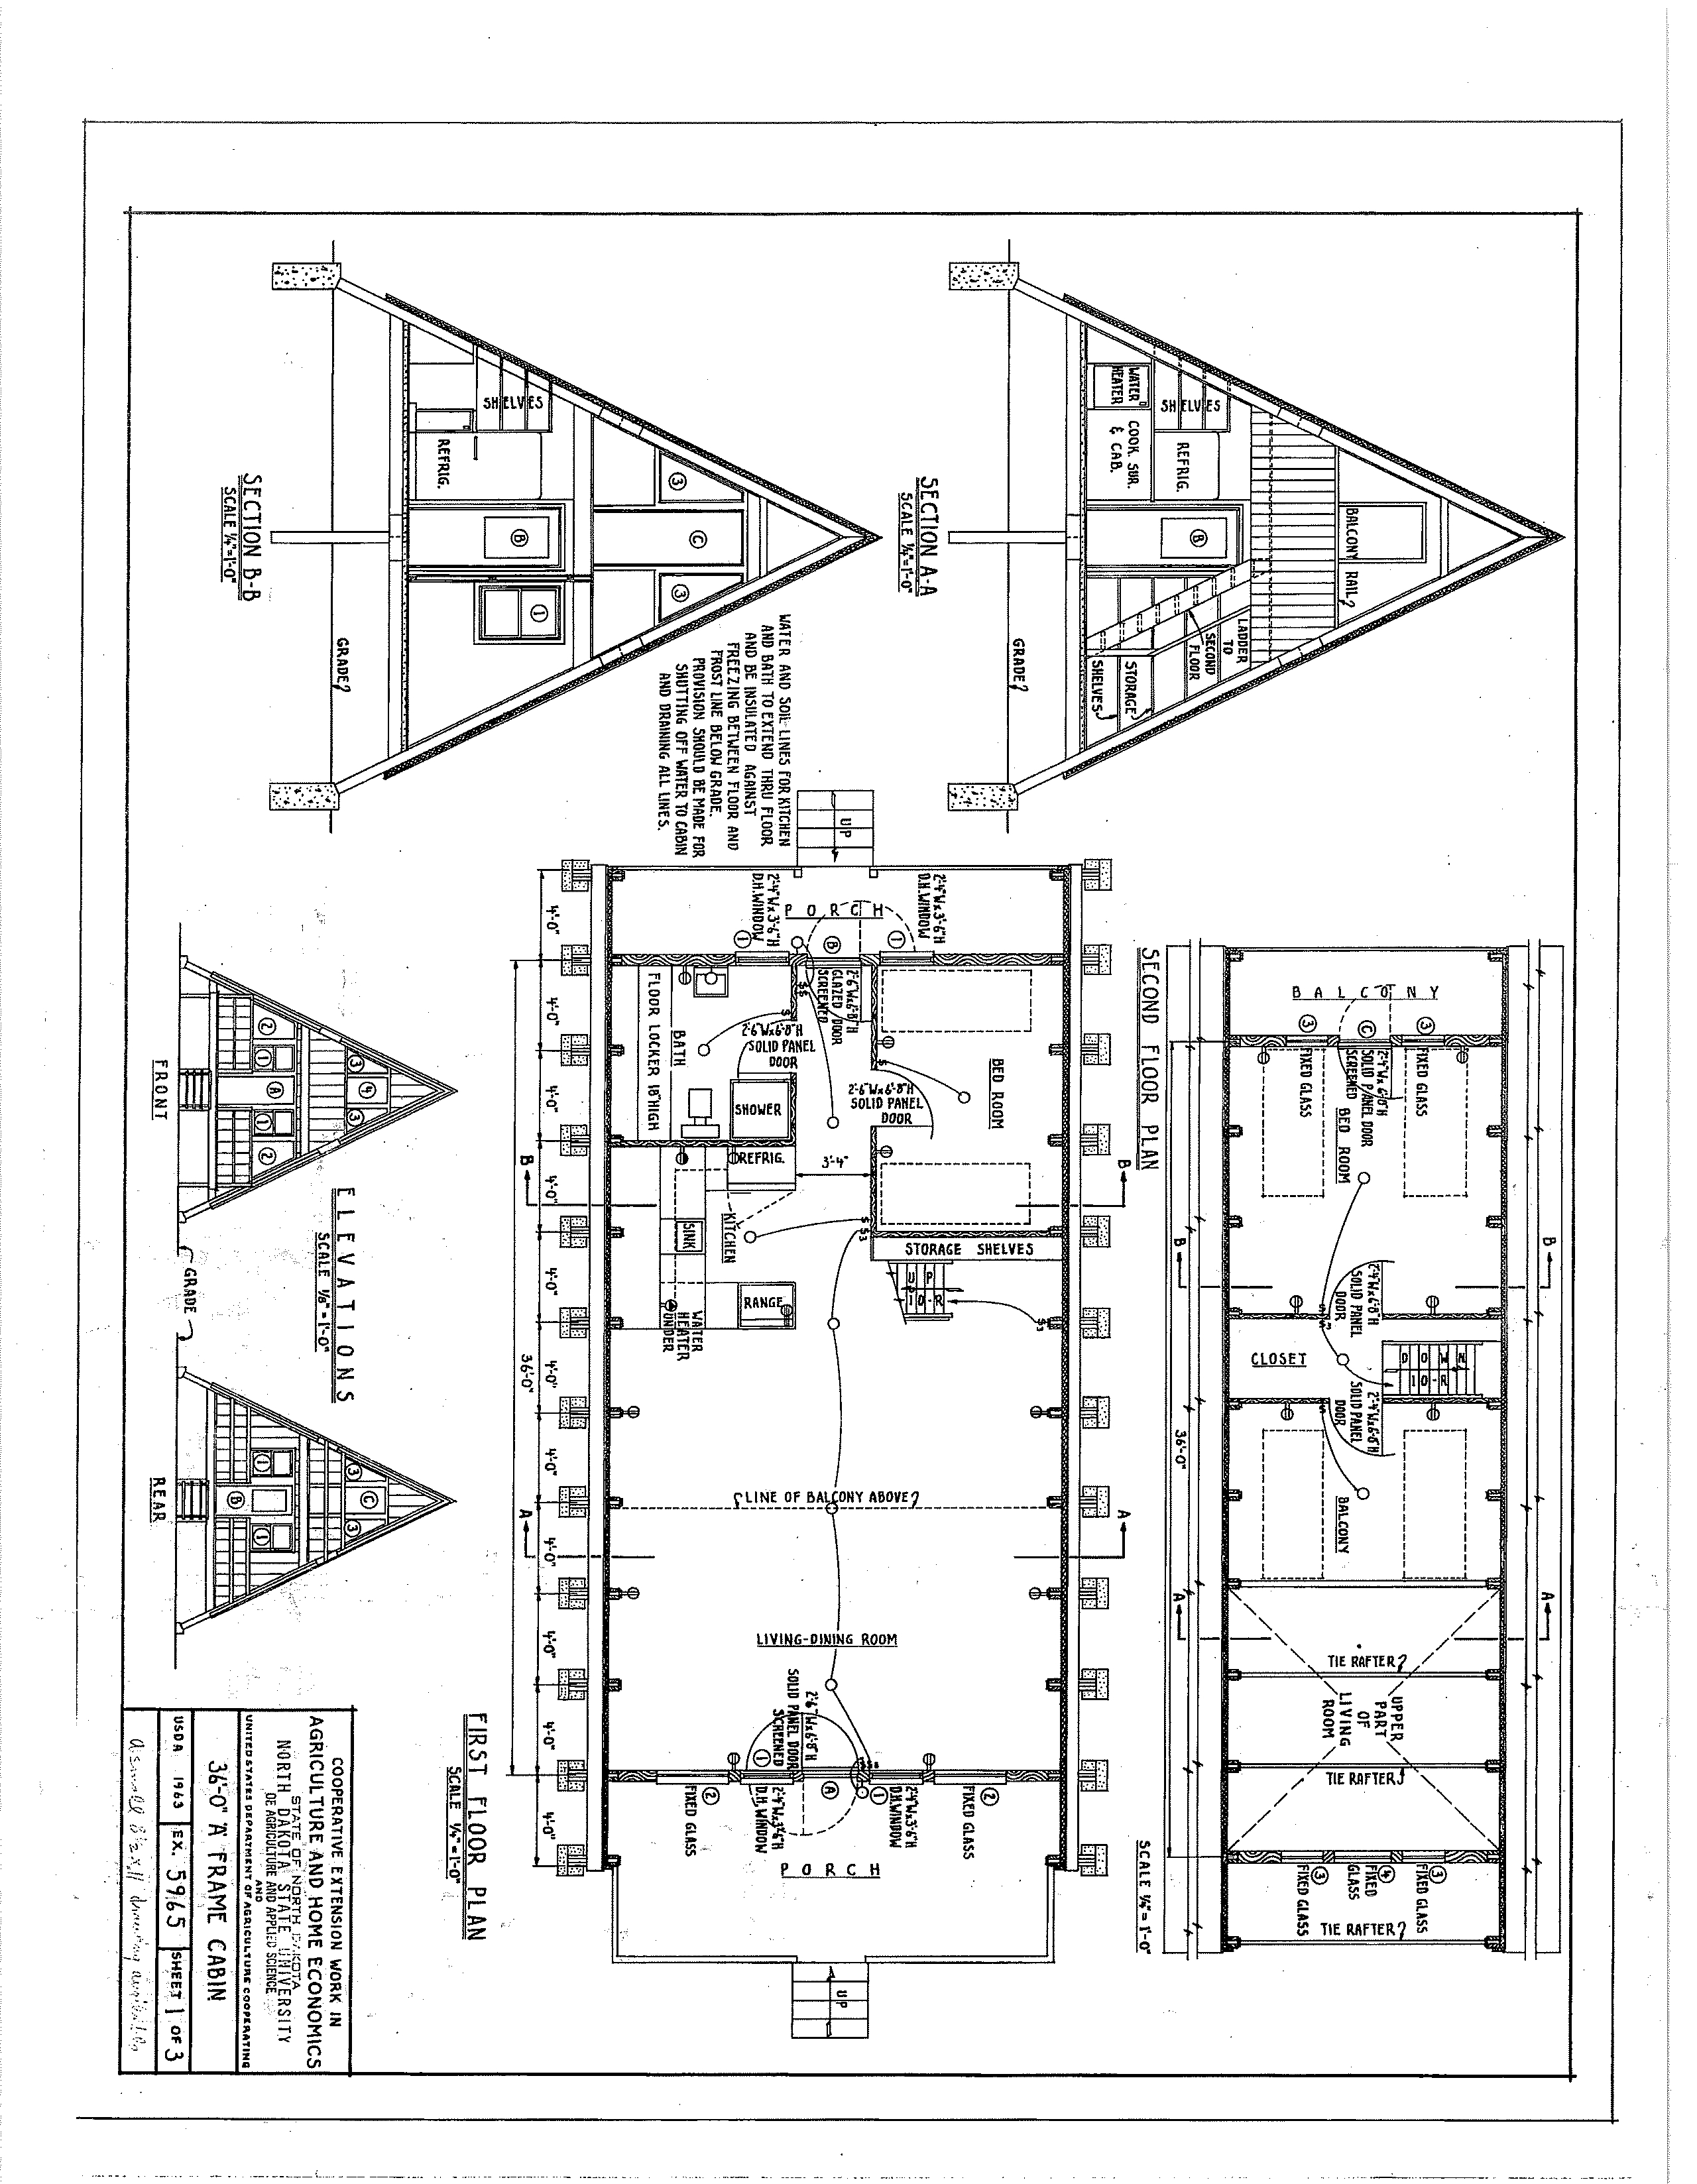 10 Fabulous Cabin Plans To Suit You! | A New Start | A Frame Cabin - Free Printable Small House Plans